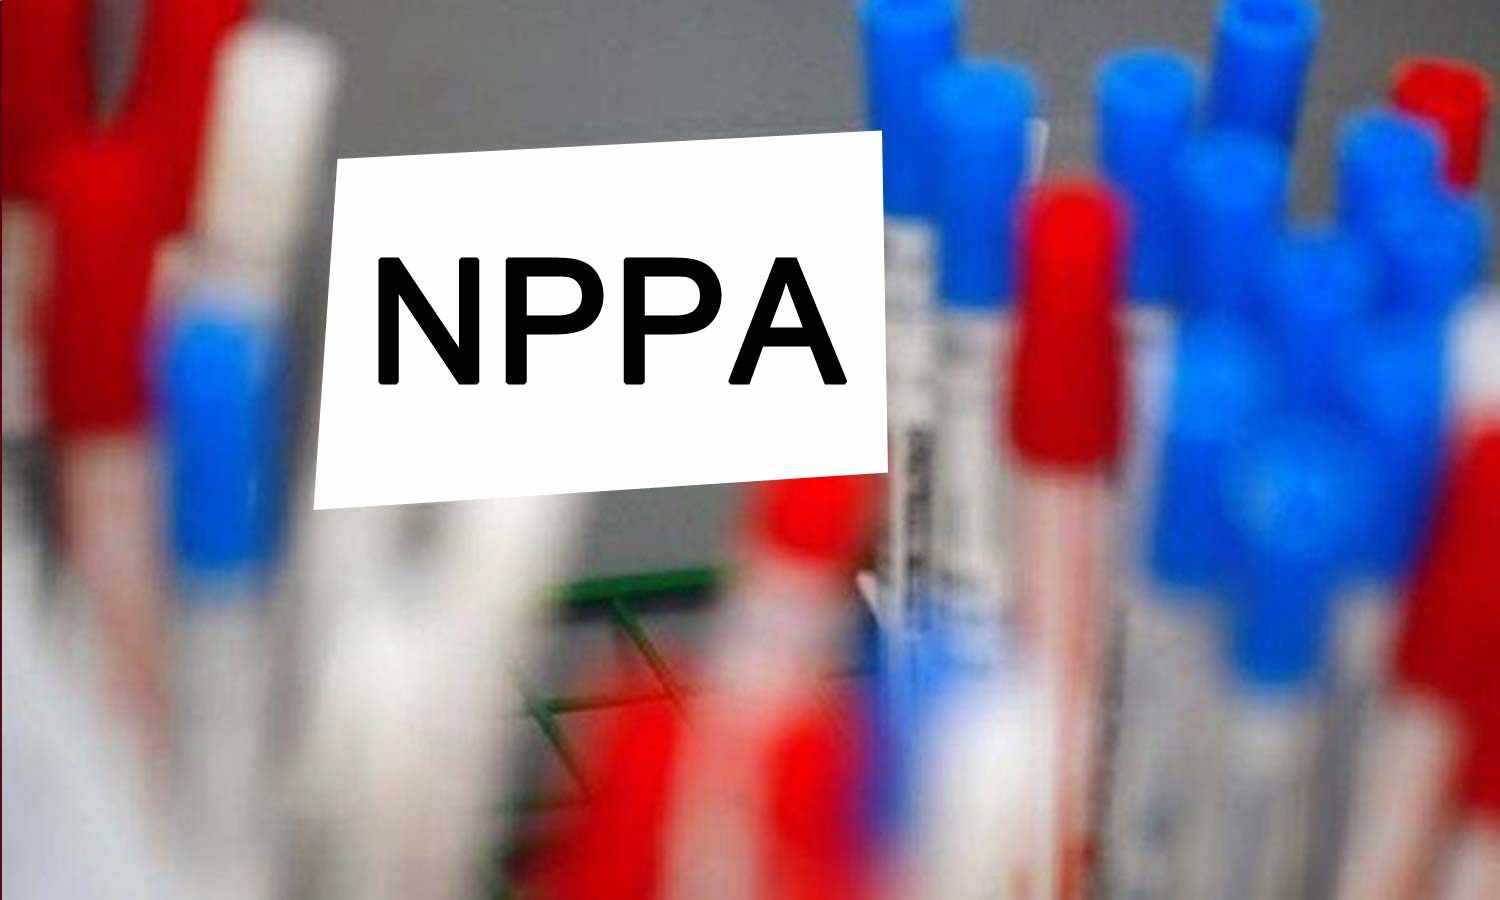 medicaldialogues.in - Medical Dialogues Team - NPPA directs Cipla, Sun Pharma, others to reduce Remdesivir MRP